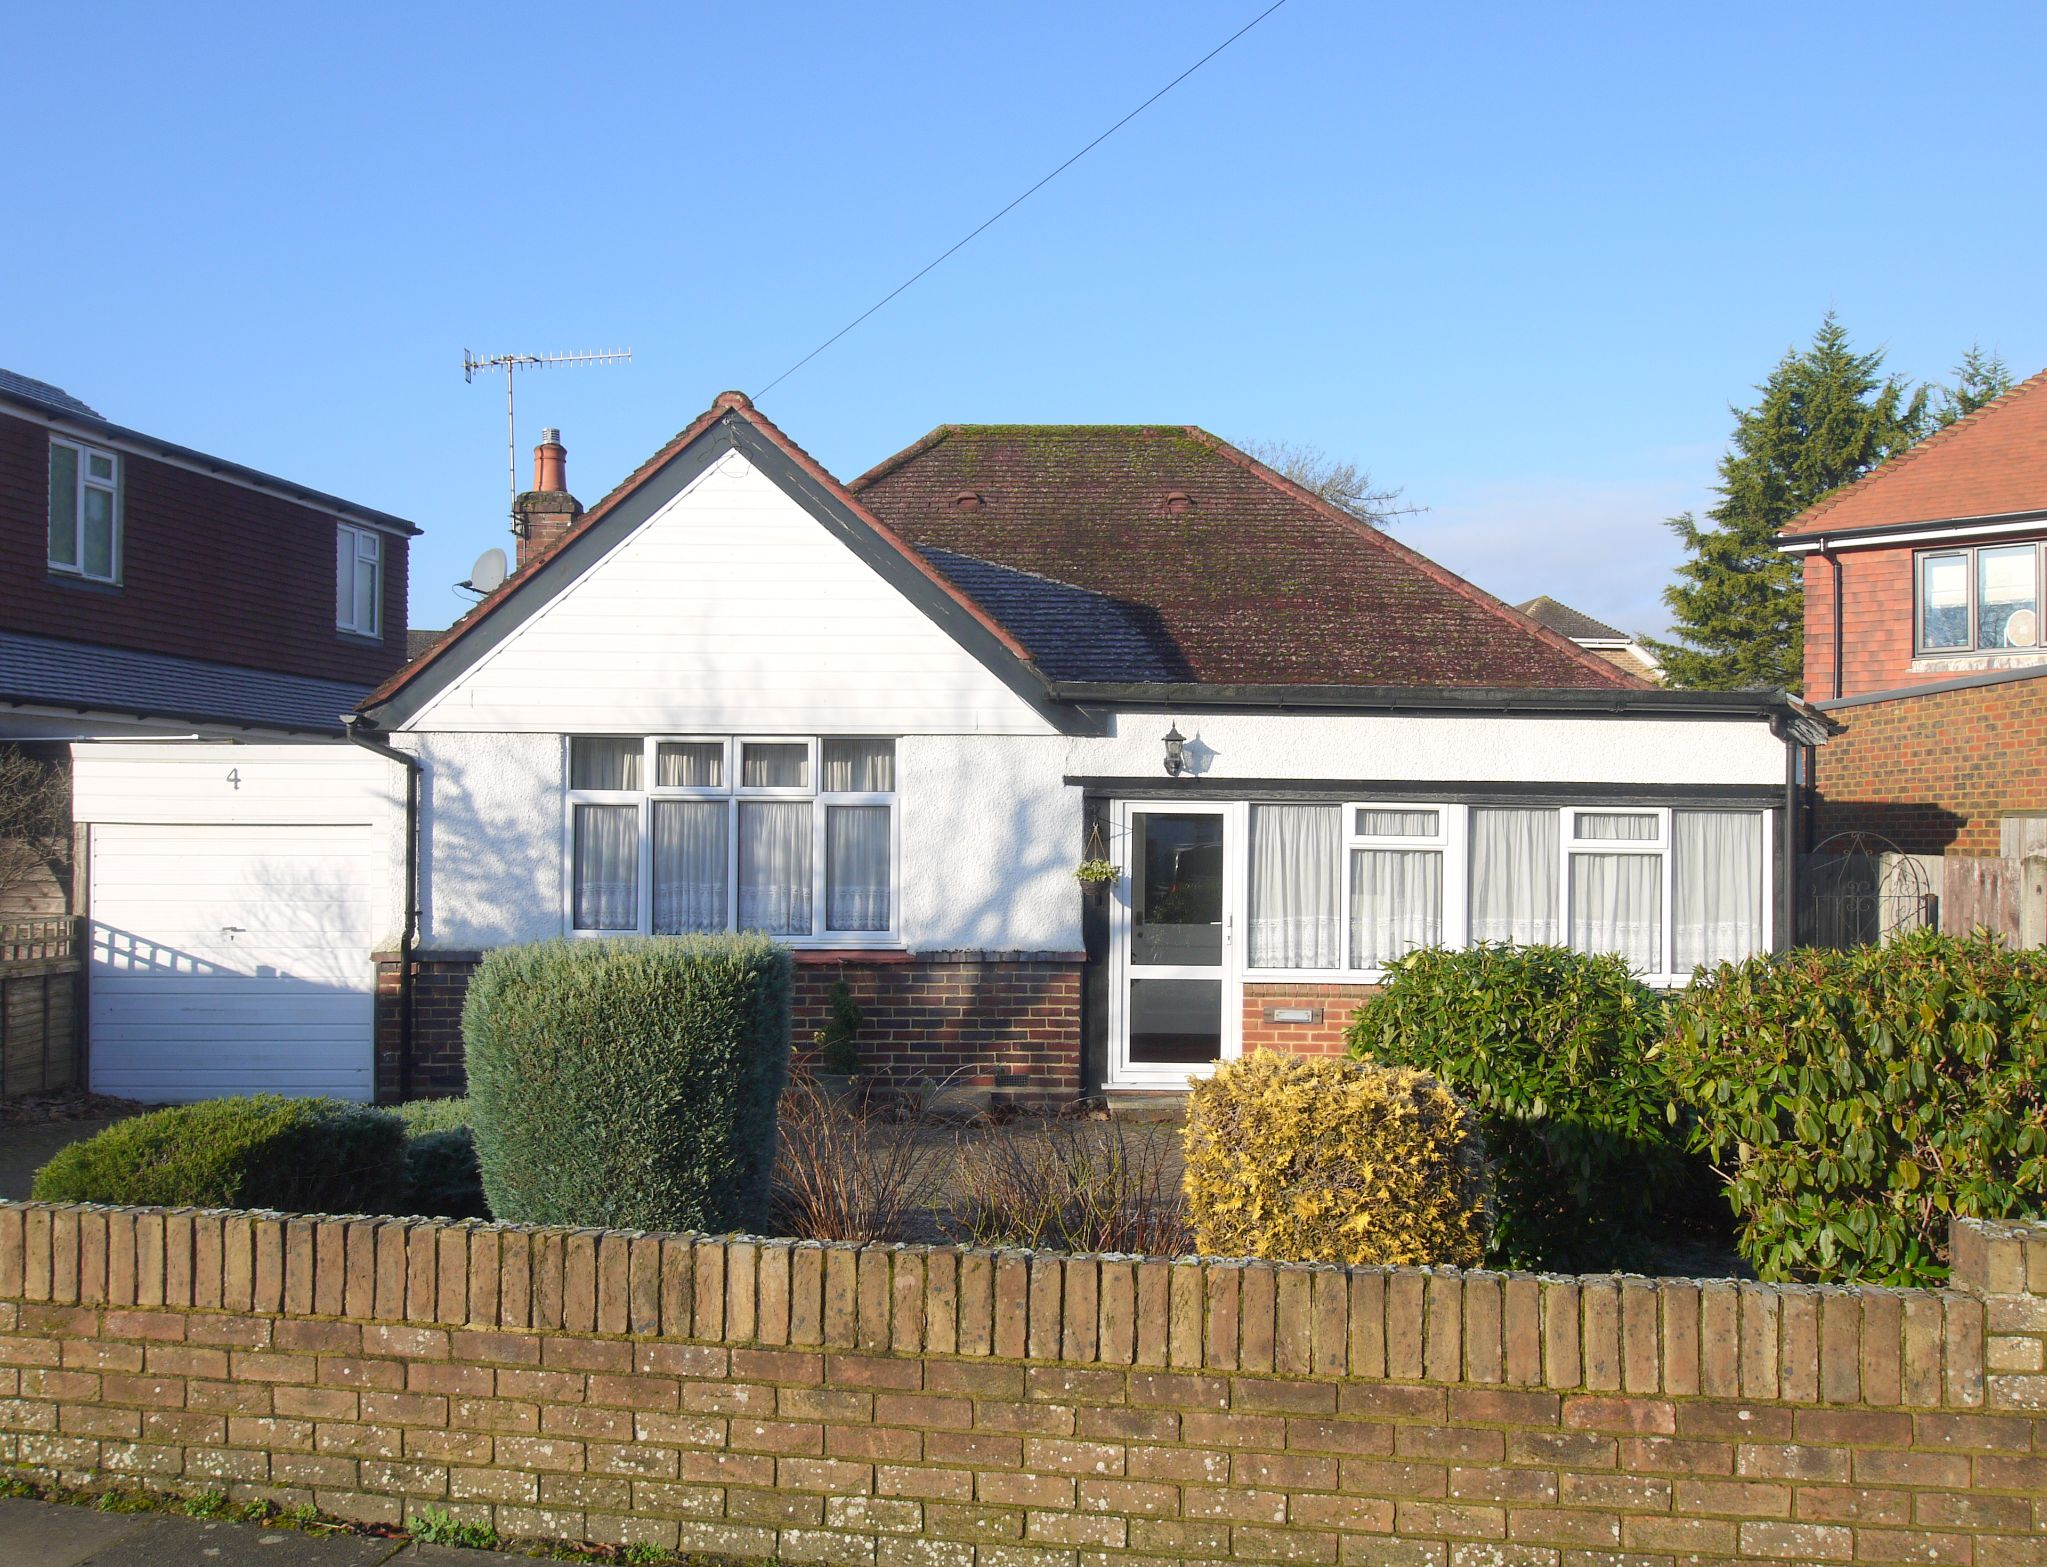 3 bedroom detached bungalow Sold in Sevenoaks - Photograph 1